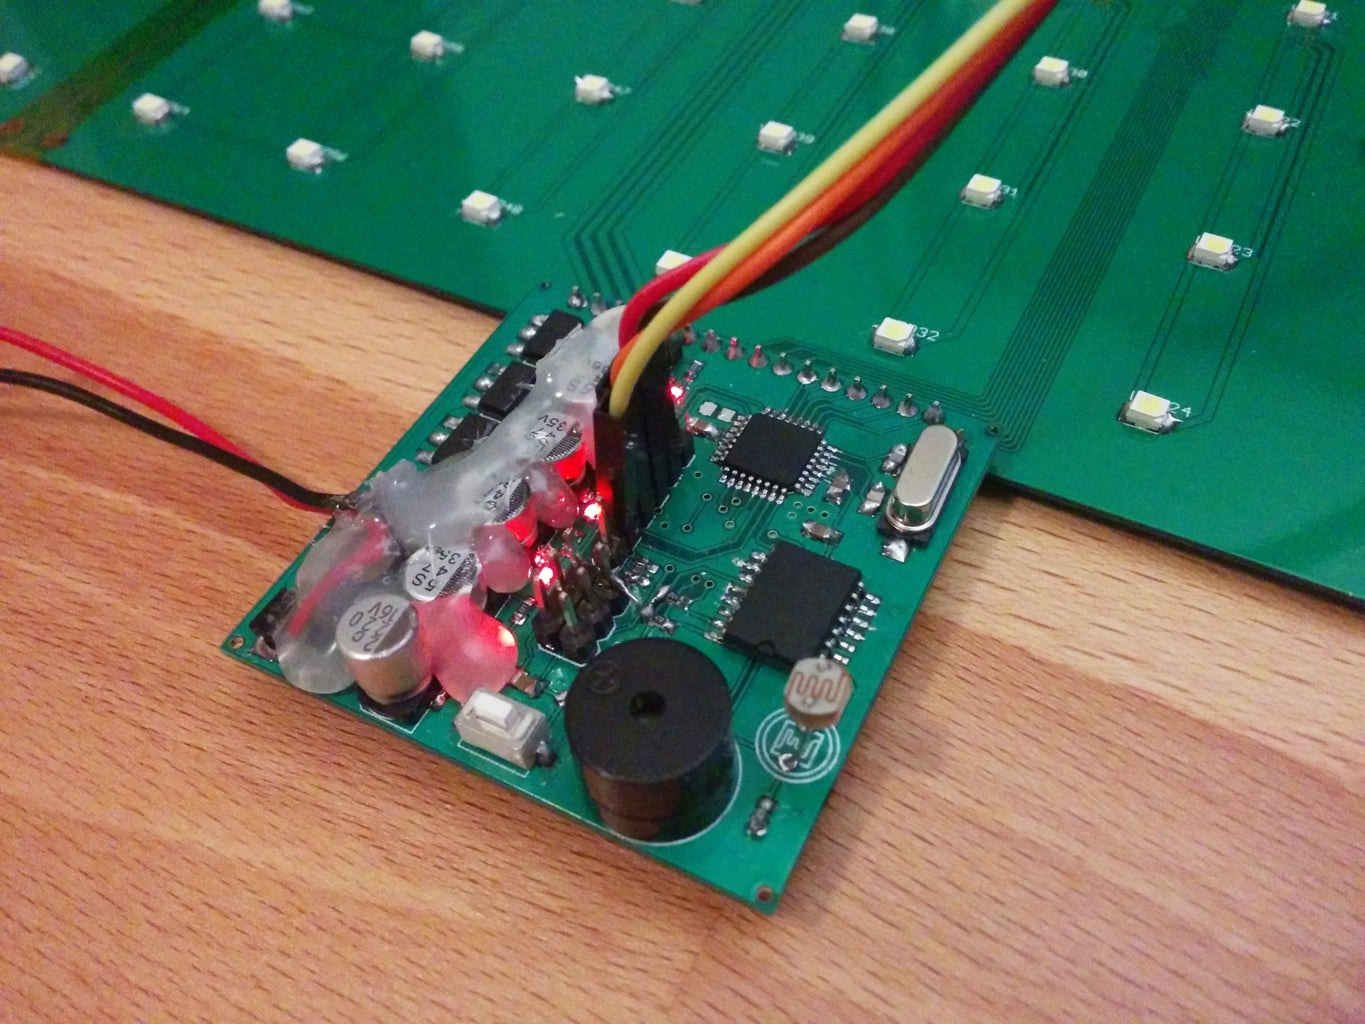 Soldering the Main Board and Testing All Electronics